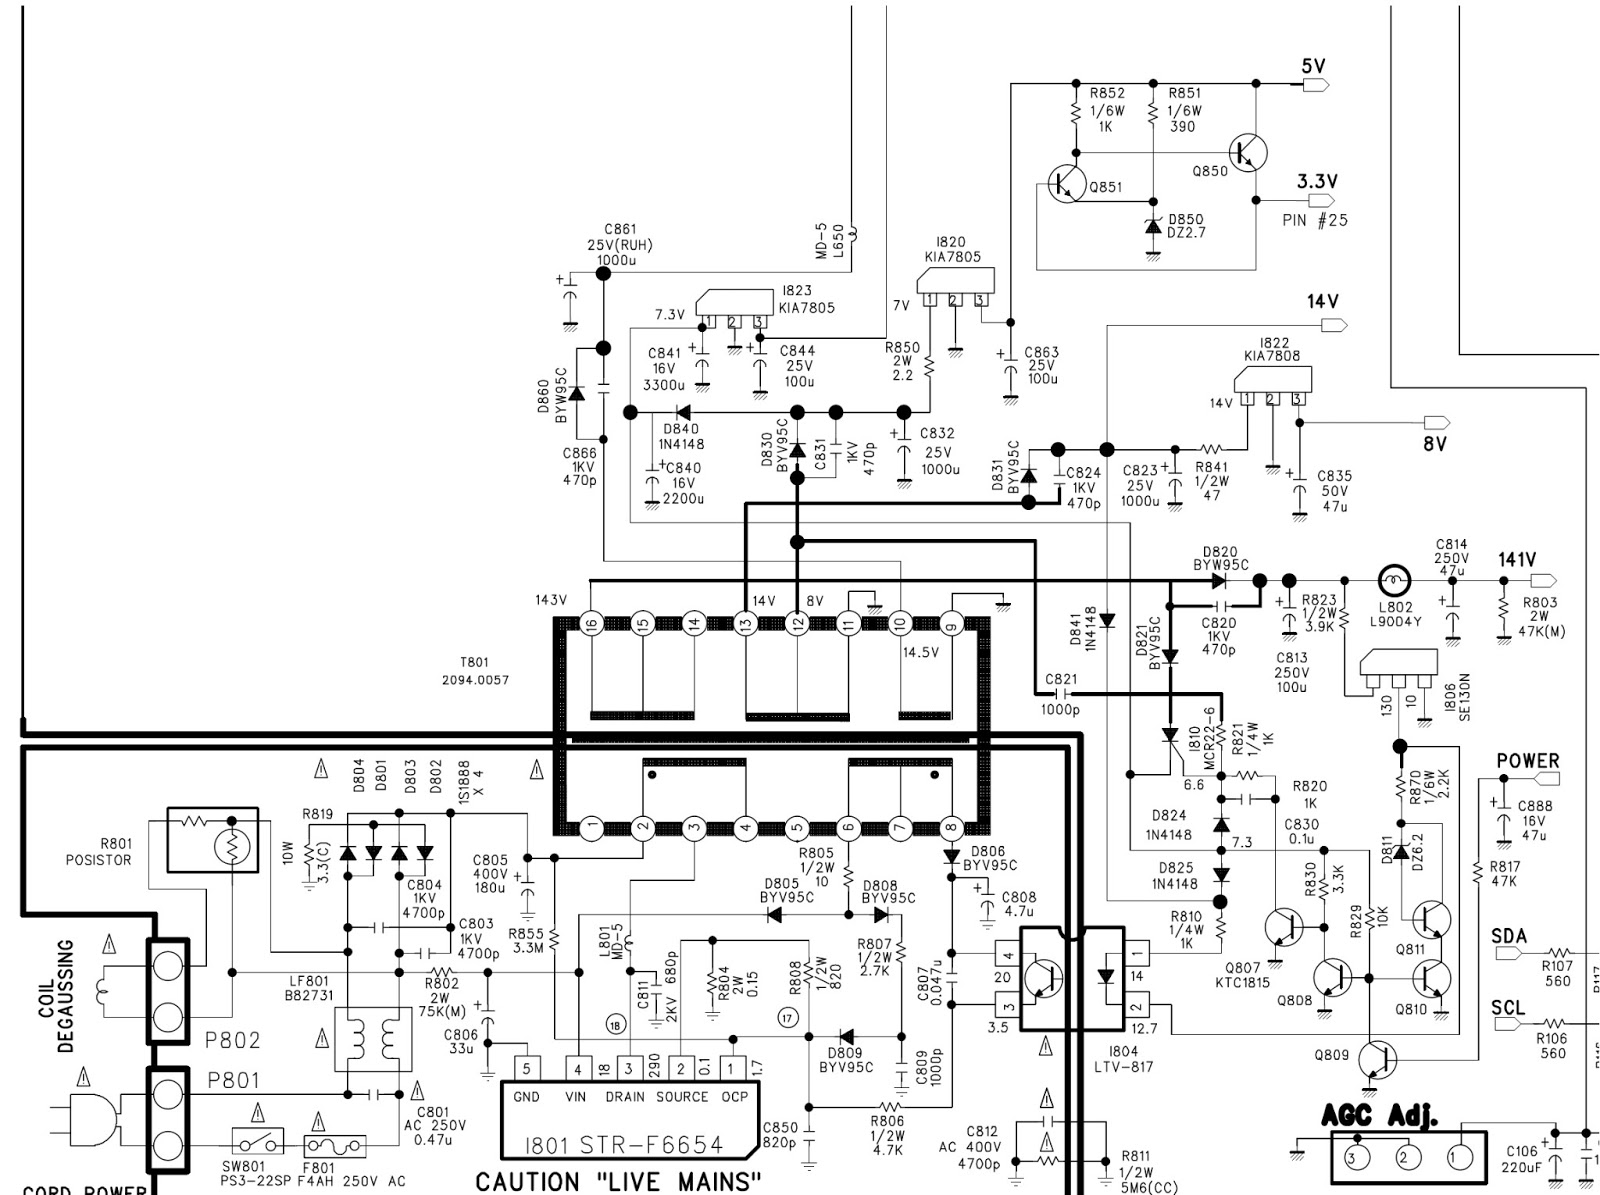 Str f6654 based smps power supply schematic diagram daewoo dsc block making machine rope pulley diagram